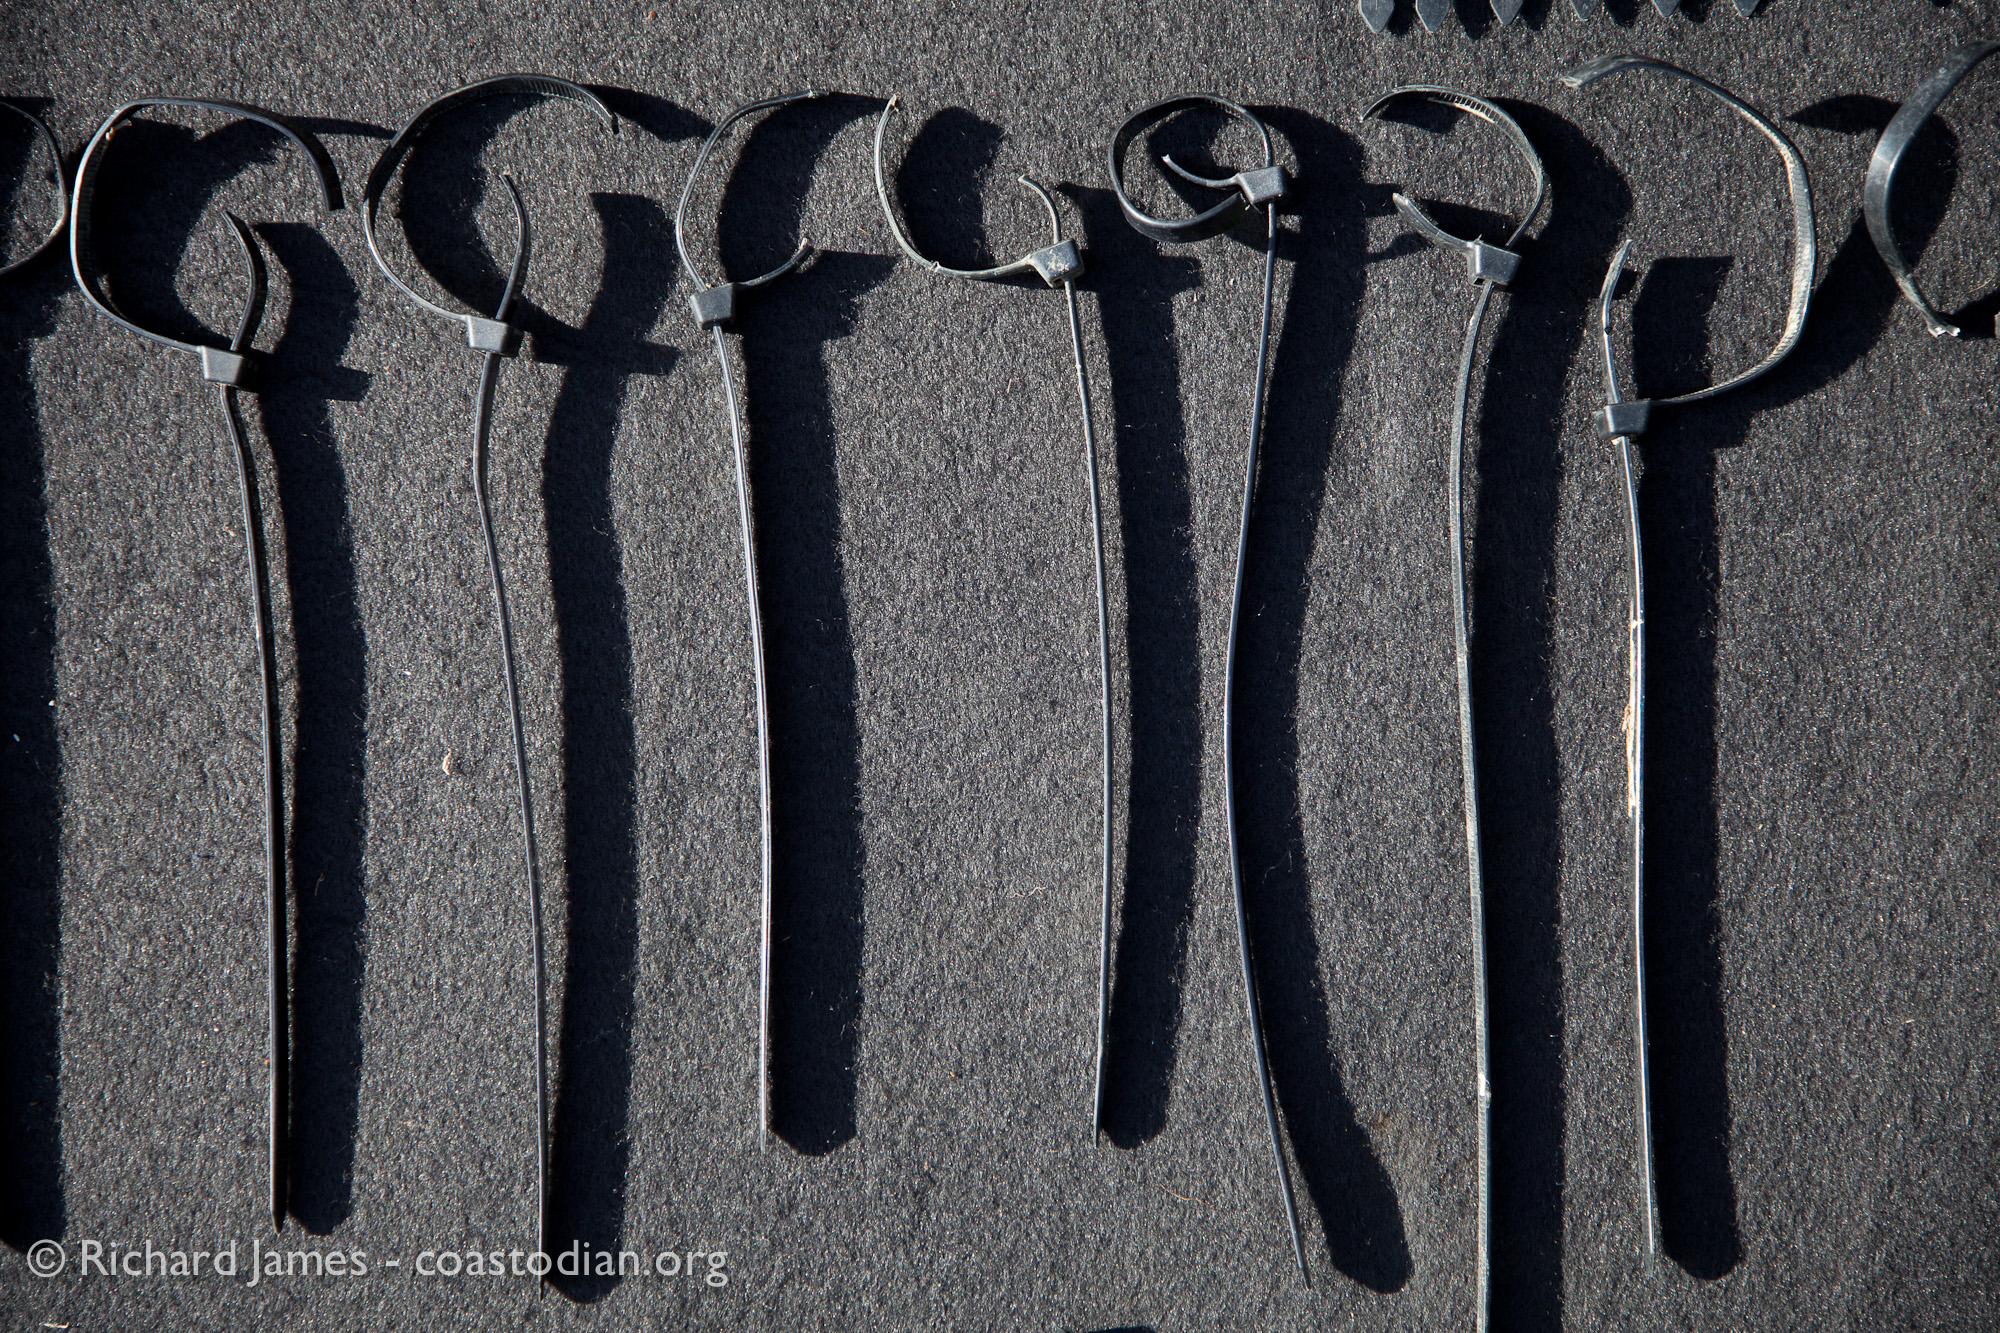 ©Richard James - coastodian.org Abandoned zip-ties collected on shore adjacent to Hog Island Oysters lease M-430-15 on 22 March, 2015